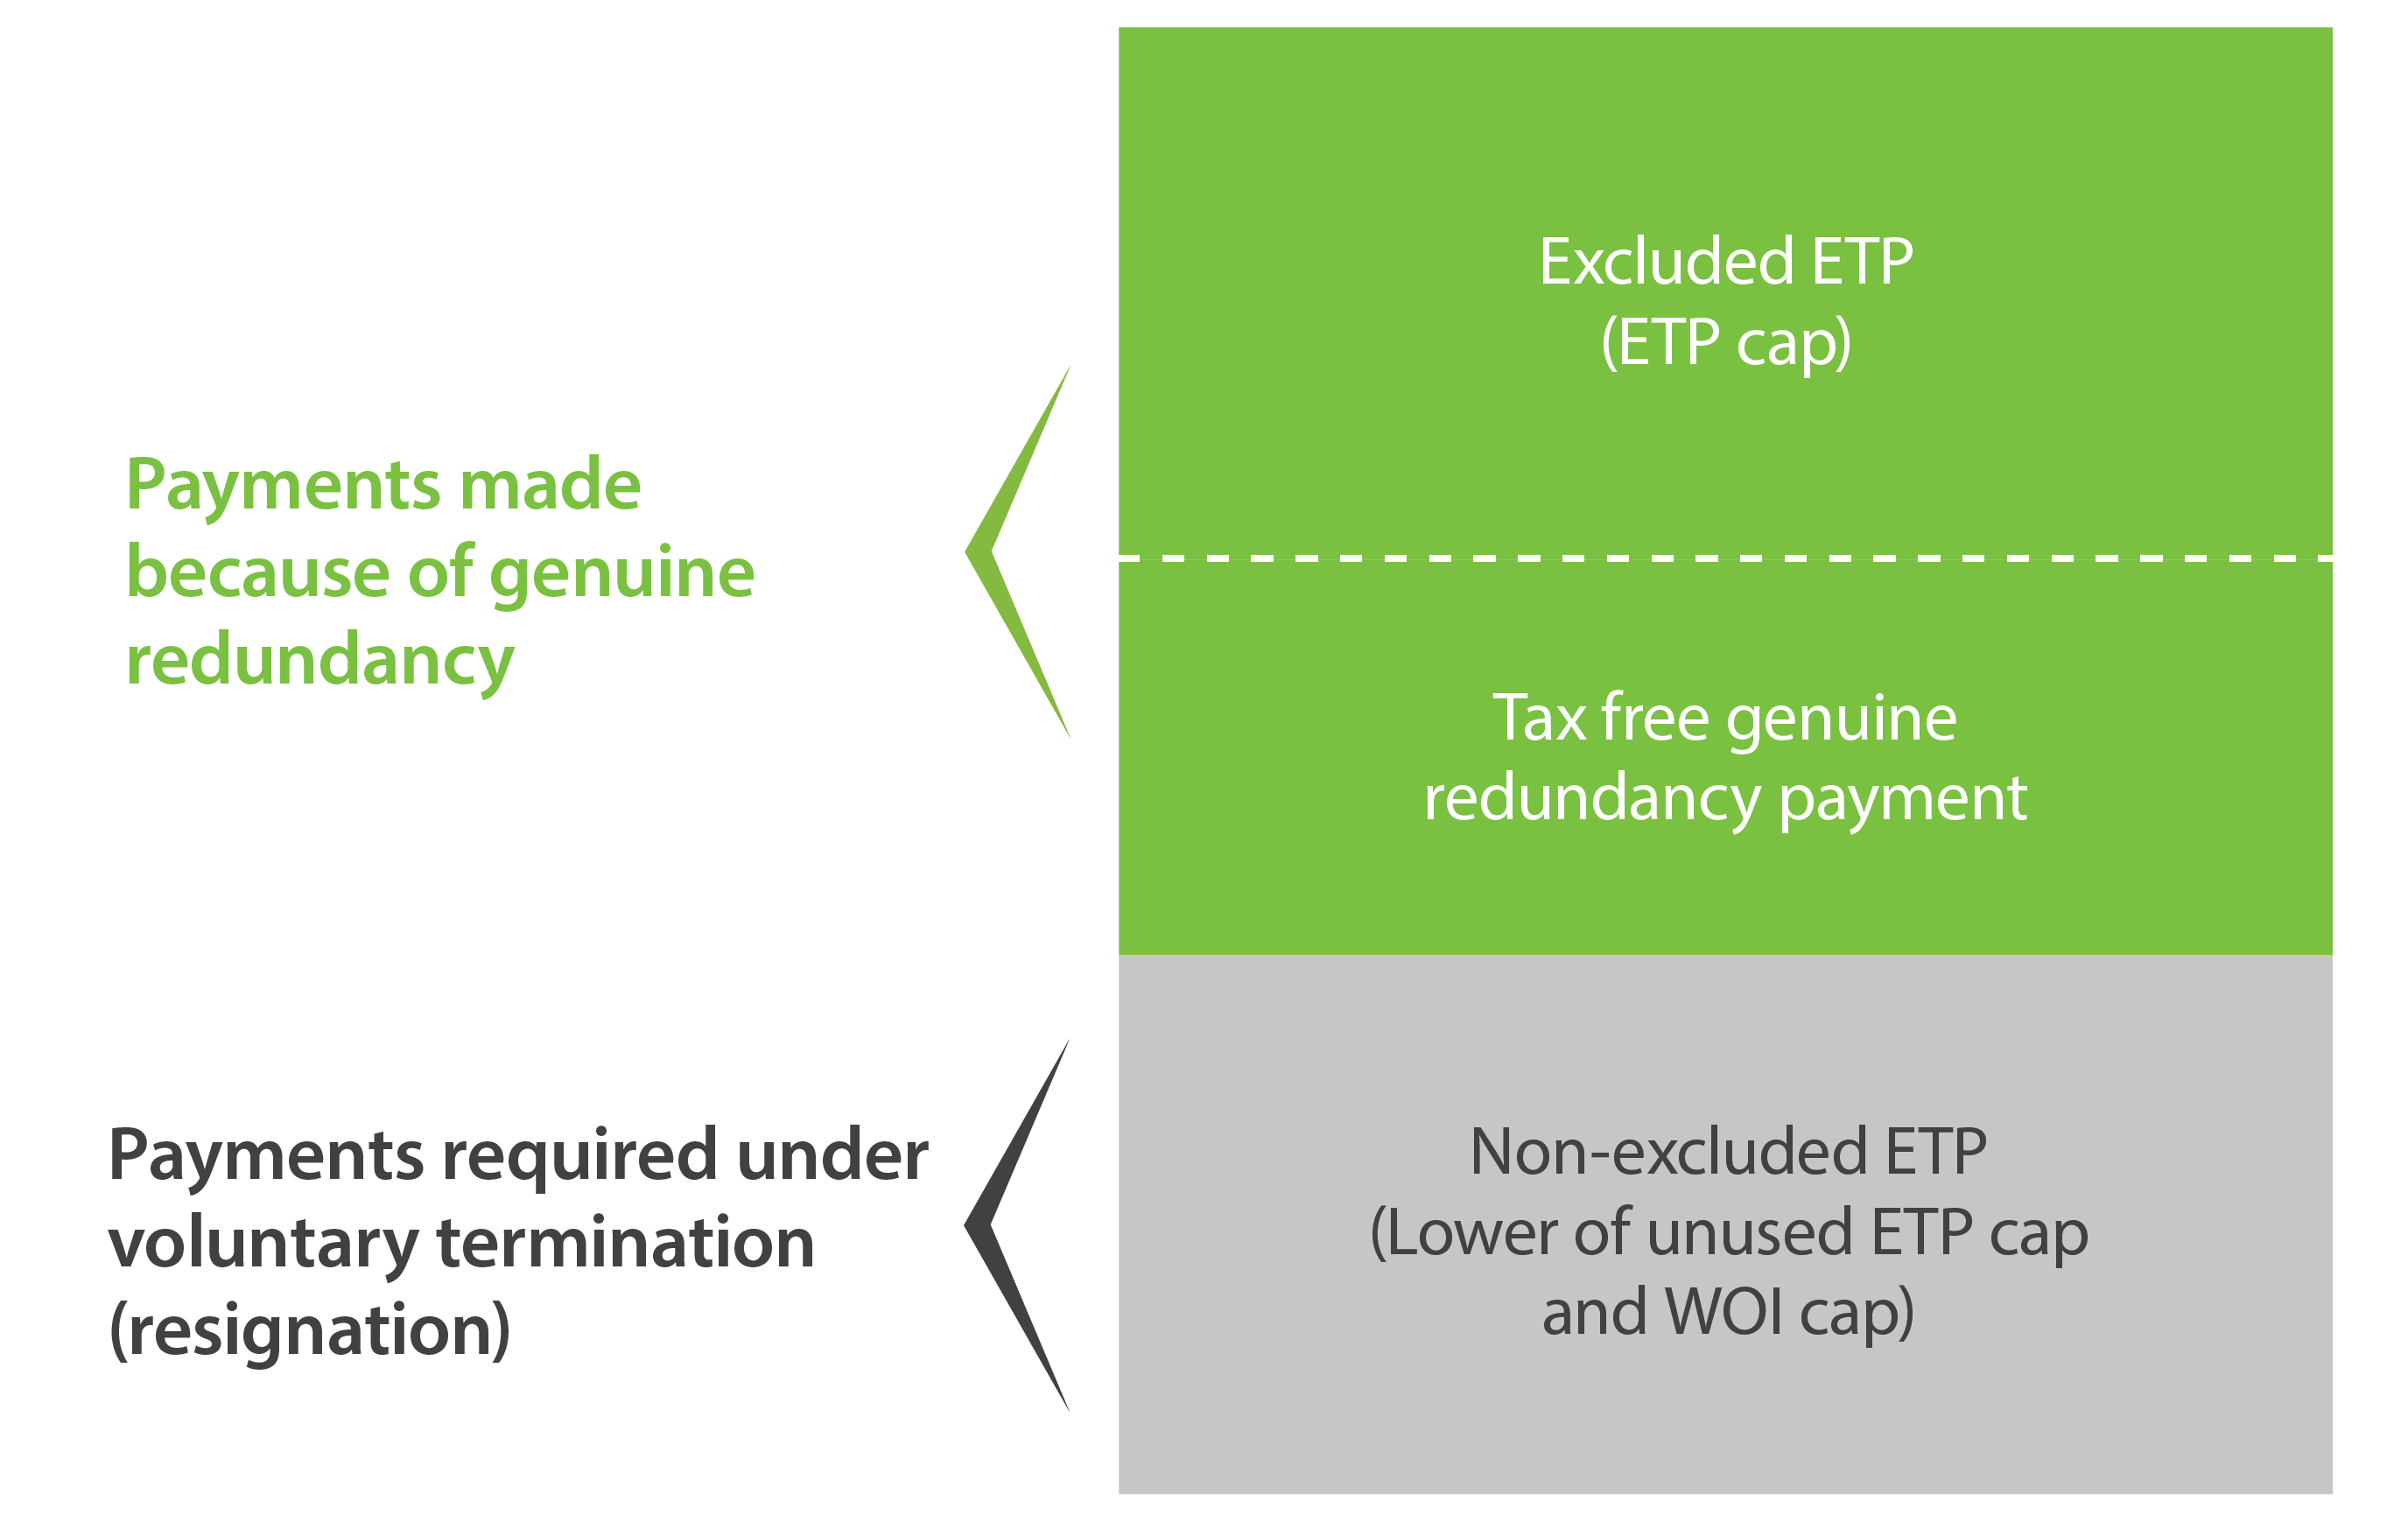 excluded ETP